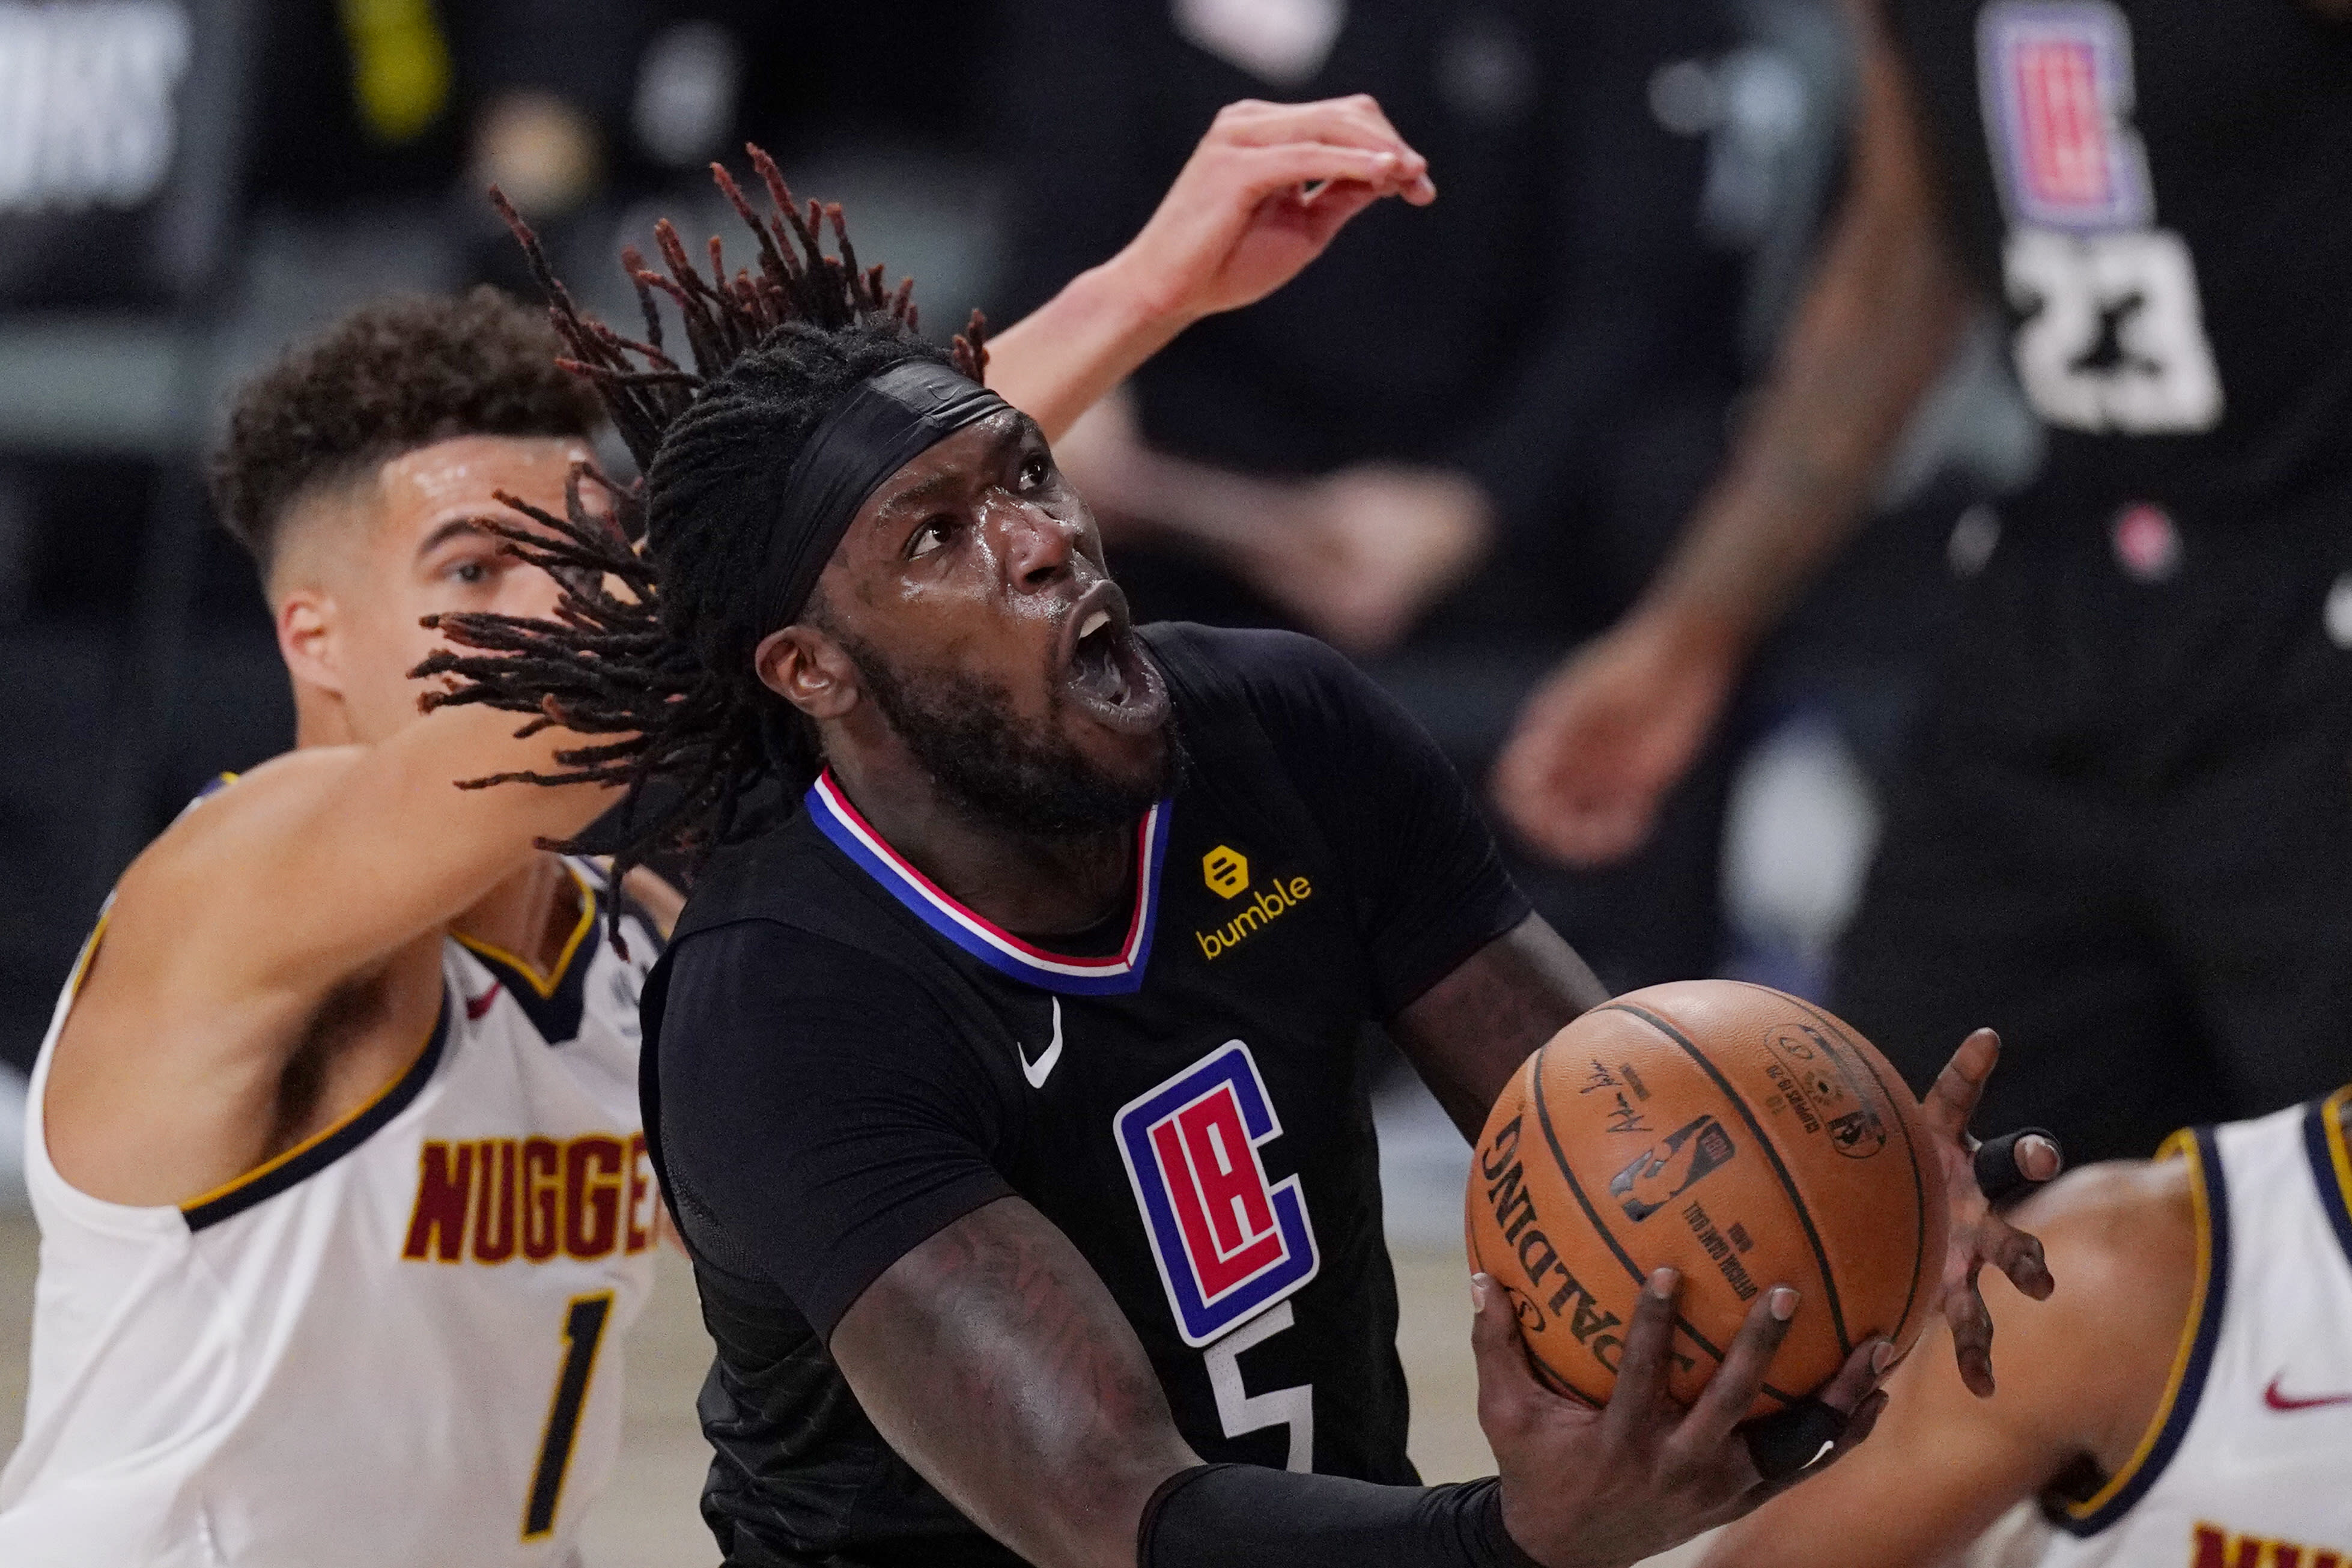 Los Angeles Clippers' Montrezl Harrell (5) drives to the basket past Denver Nuggets' Michael Porter Jr. (1) in the second half of an NBA conference semifinal playoff basketball game Thursday, Sept 3, 2020, in Lake Buena Vista Fla. (AP Photo/Mark J. Terrill)